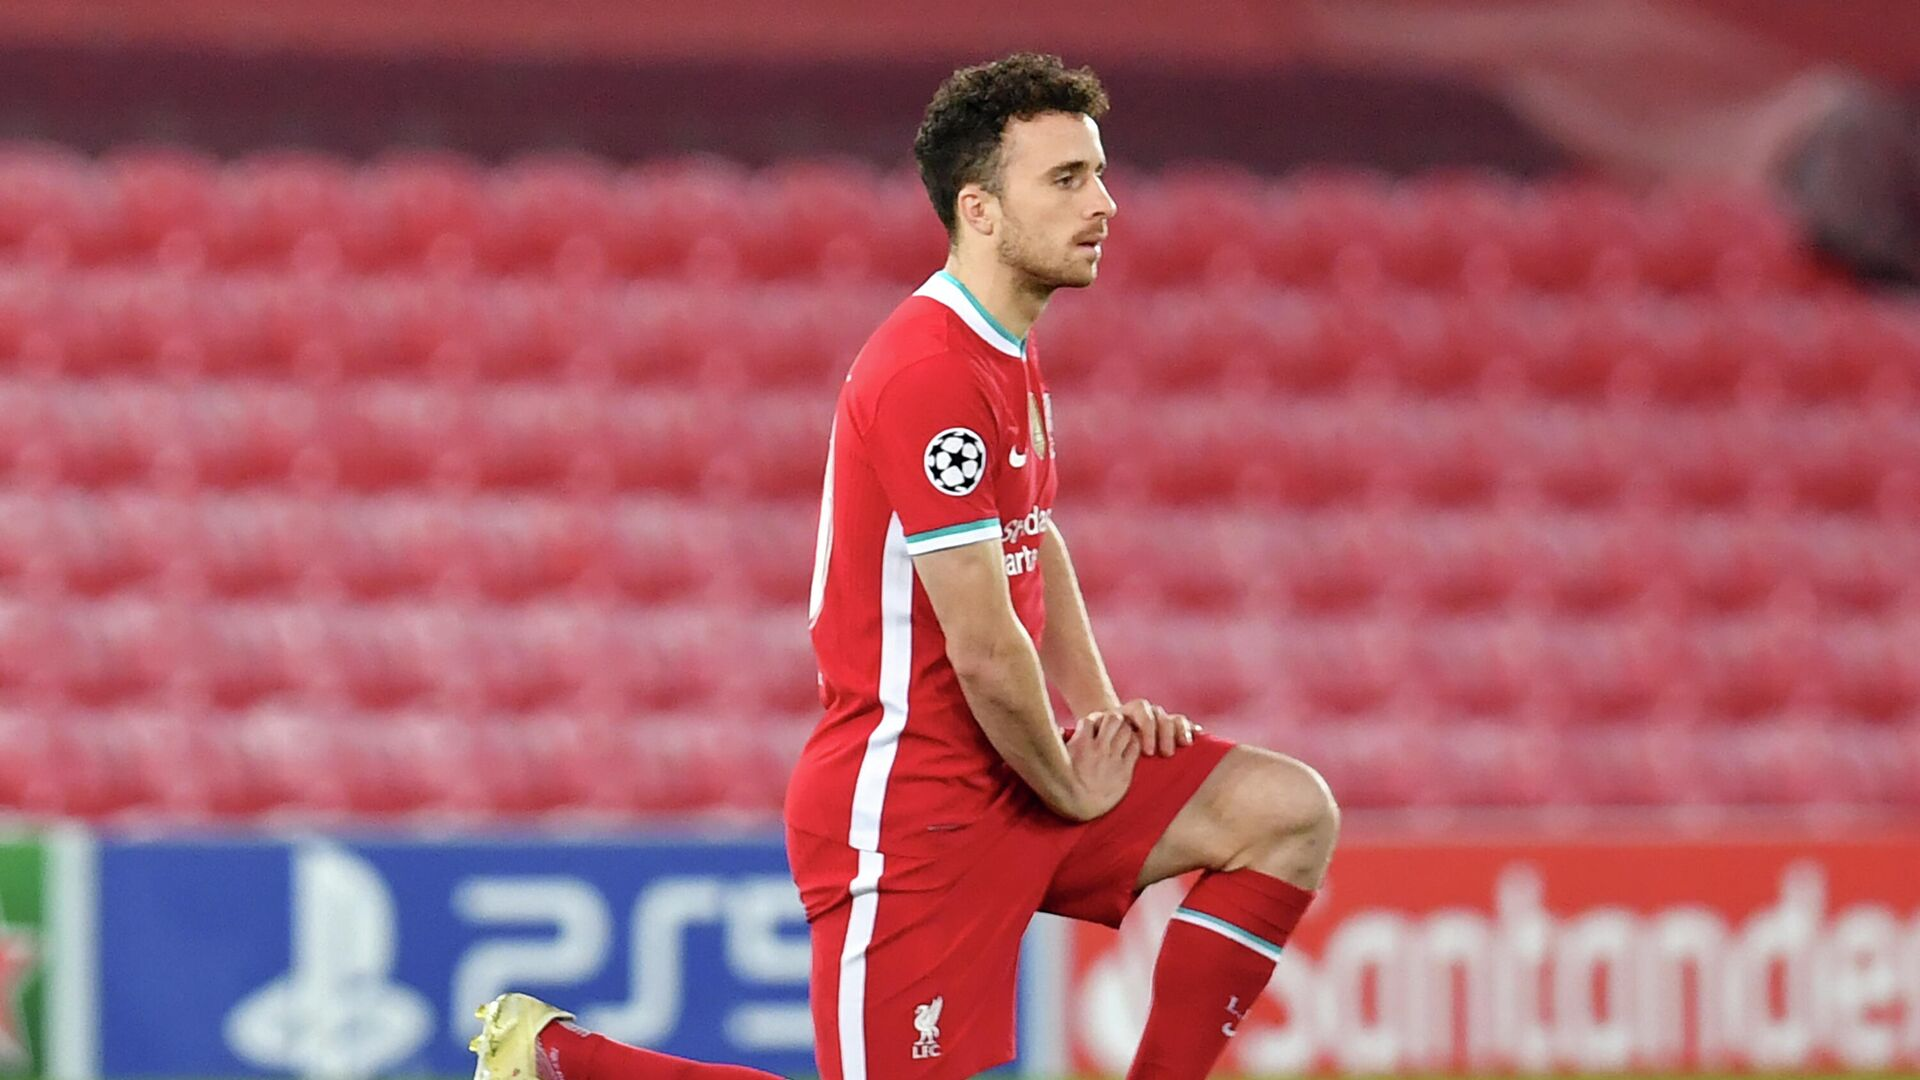 Liverpool's Portuguese striker Diogo Jota 'takes a knee' in support of anti-Racism campaigns ahead of the UEFA Champions League 1st round Group D football match between Liverpool and Ajax at Anfield  in Liverpool, north west England on December 1, 2020. (Photo by Paul ELLIS / POOL / AFP) - РИА Новости, 1920, 14.12.2020